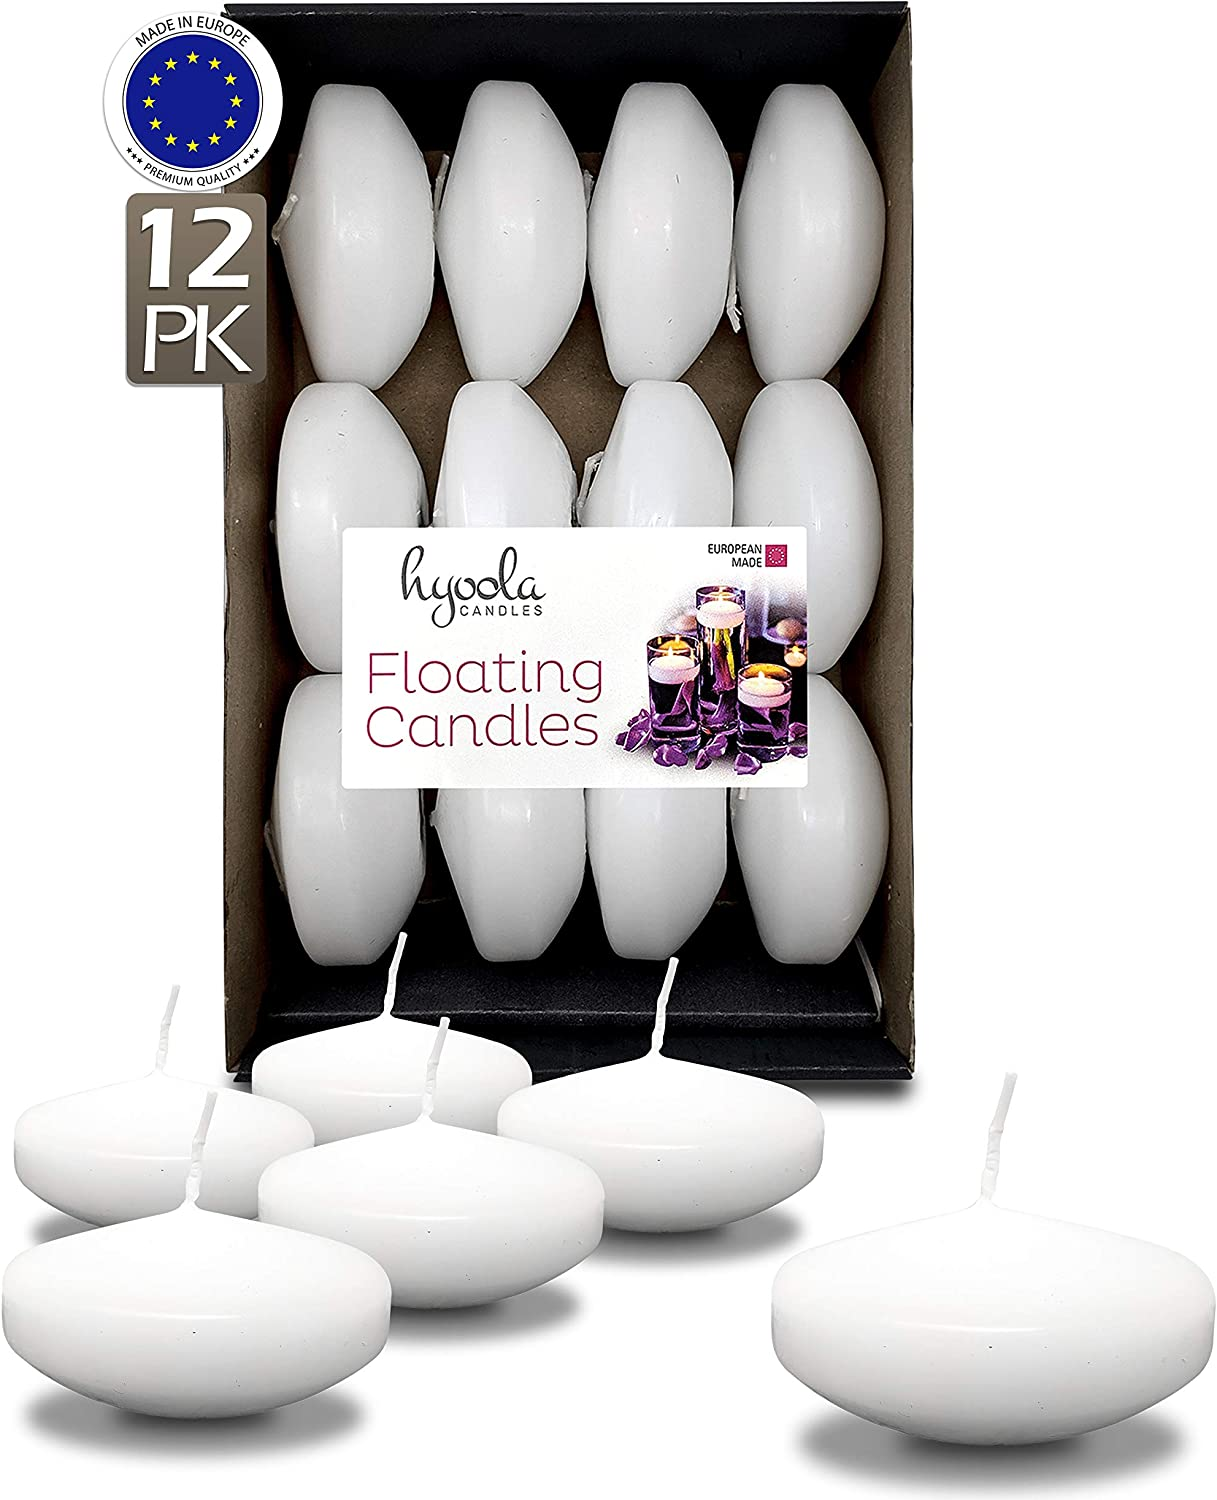 HYOOLA Premium White Floating Candles 3 Inch Hour Pack - 12 8 overseas online shopping